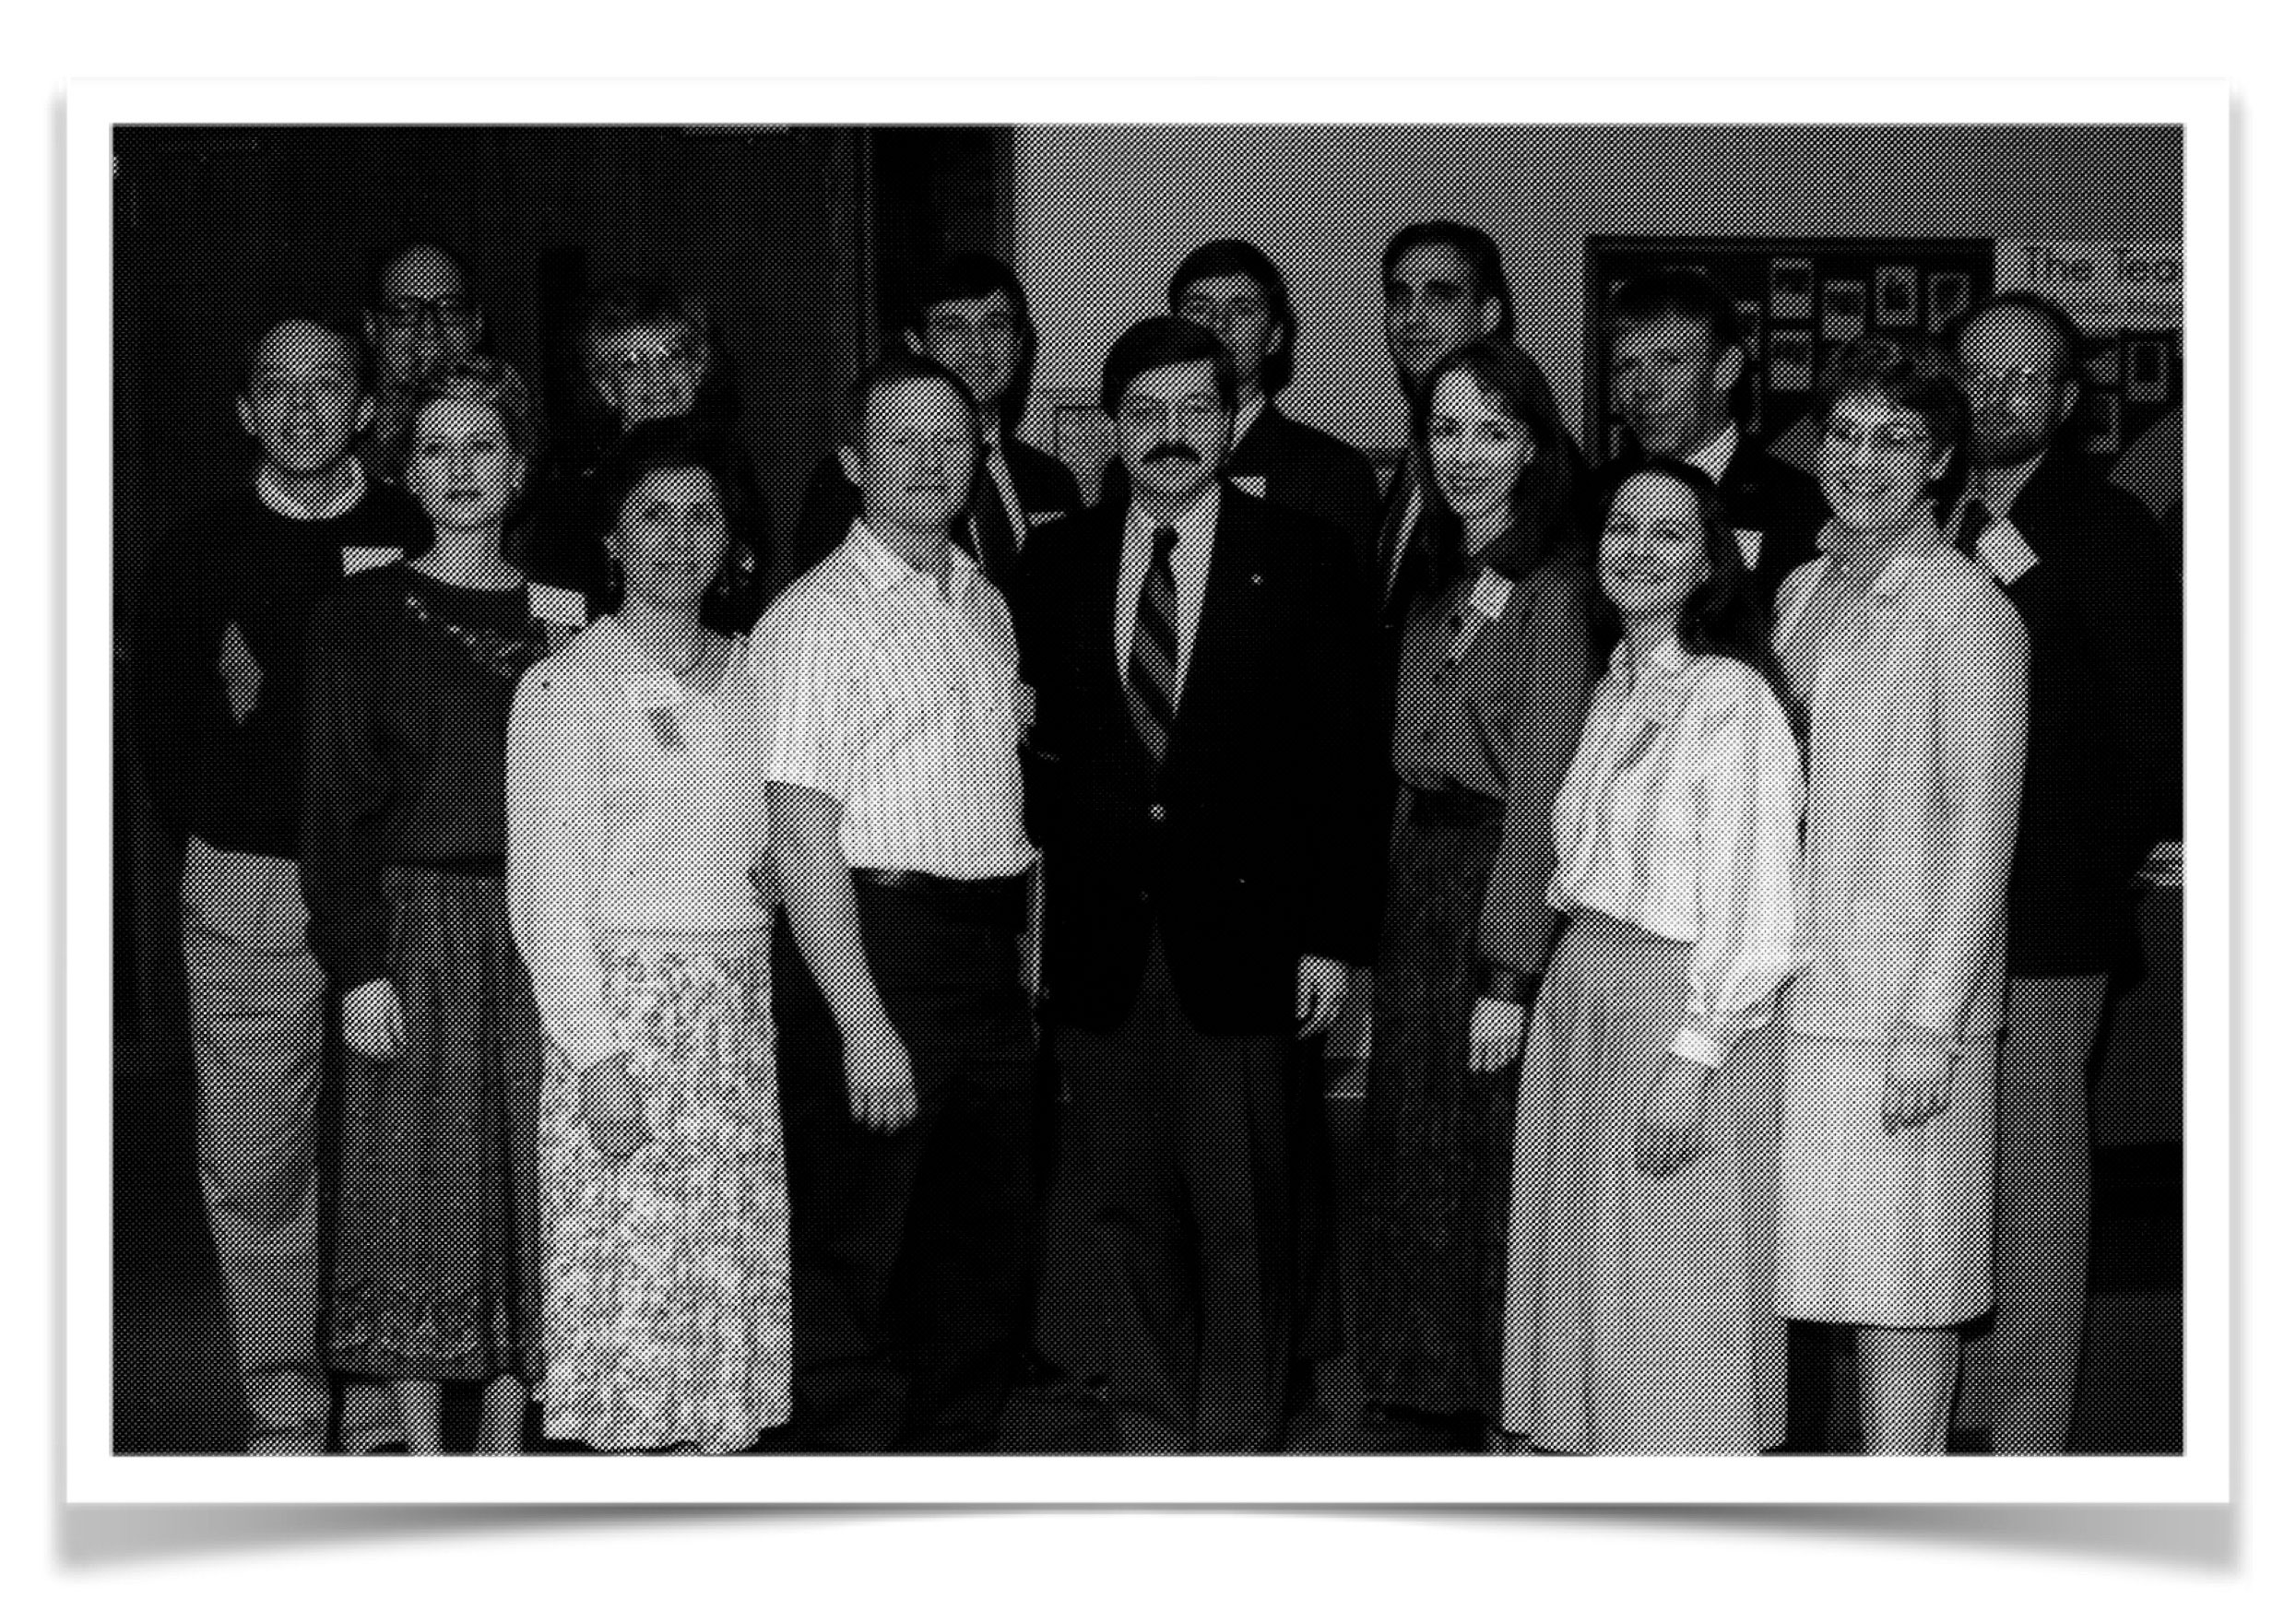 History of Homeschooling in Iowa 1990: The 1993 NICHE Board with Governor Branstad